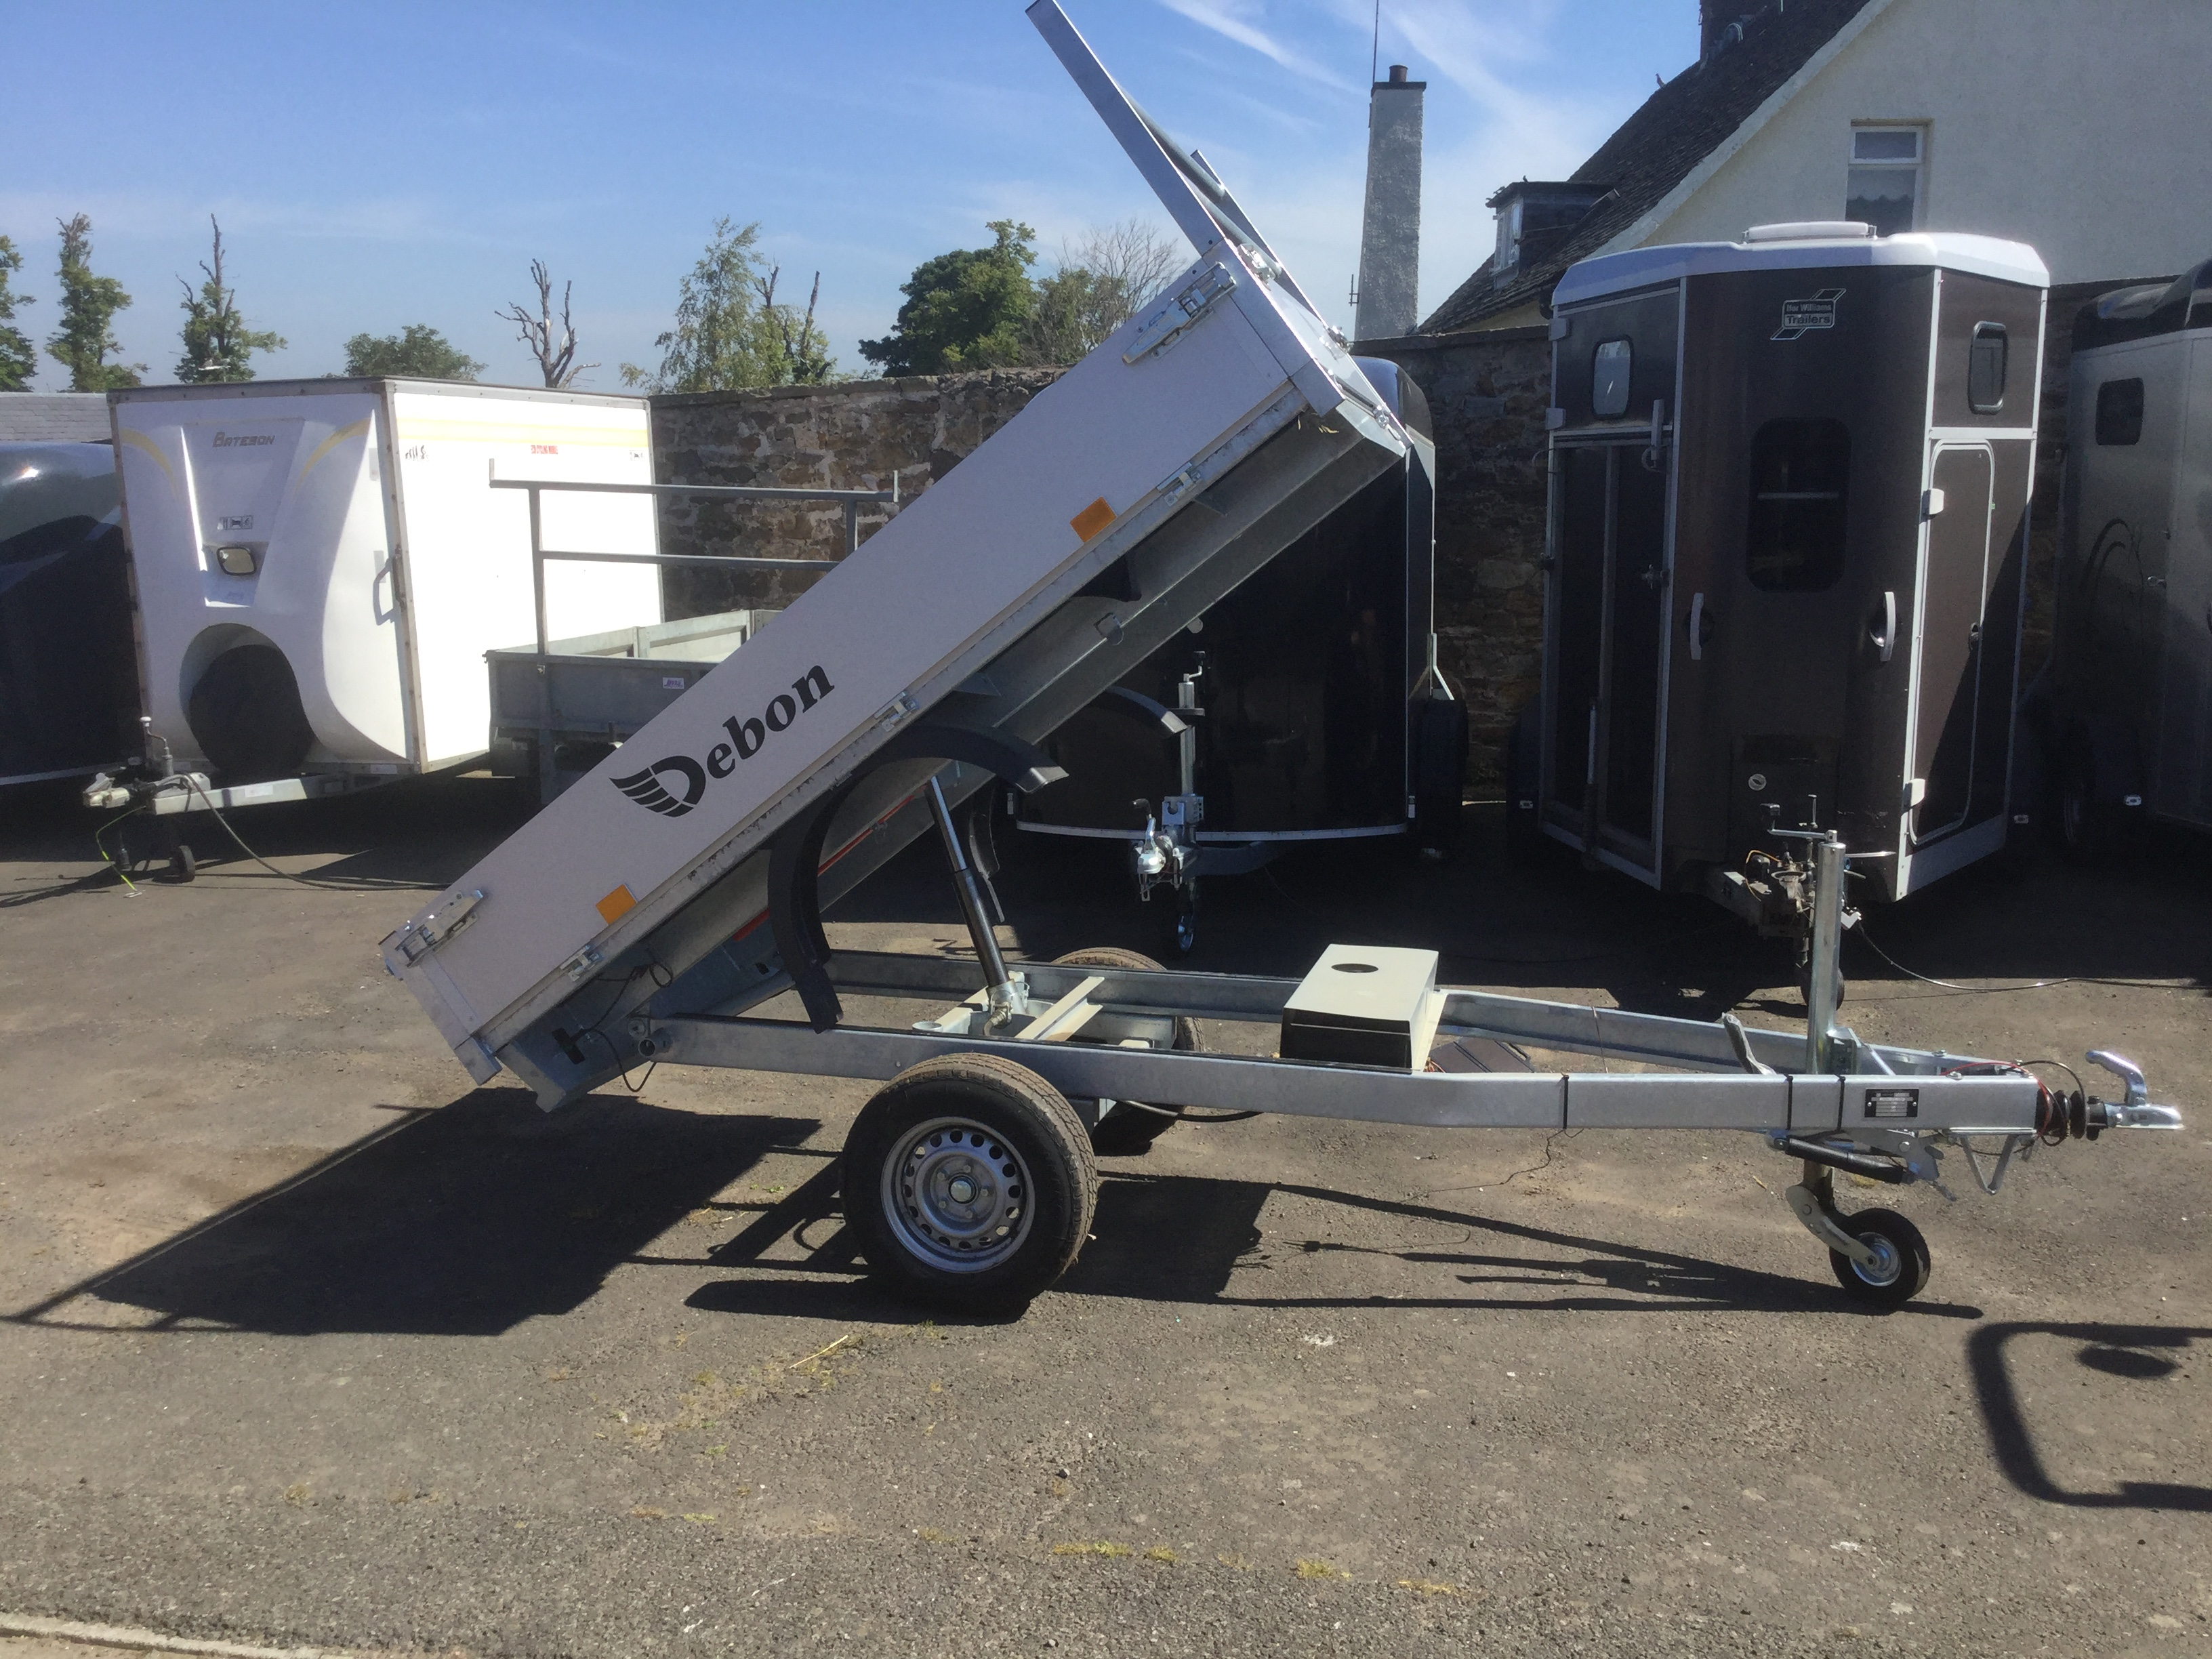 Debon electric tipper